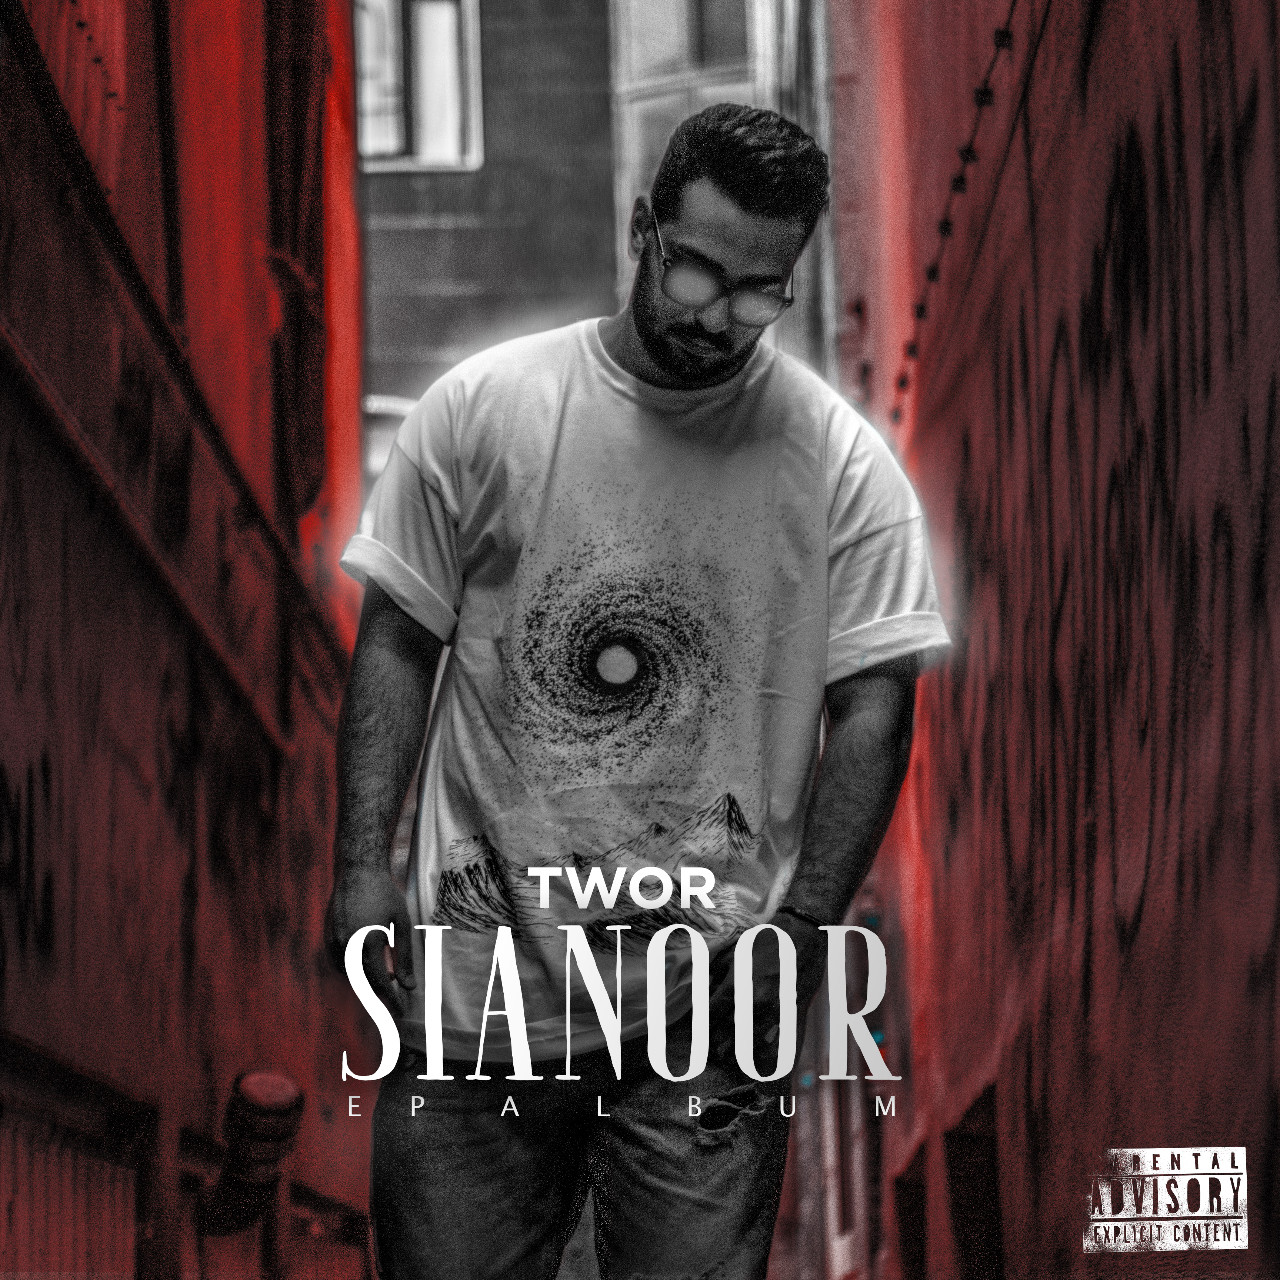 TwoR Ft AreX - Sianoor